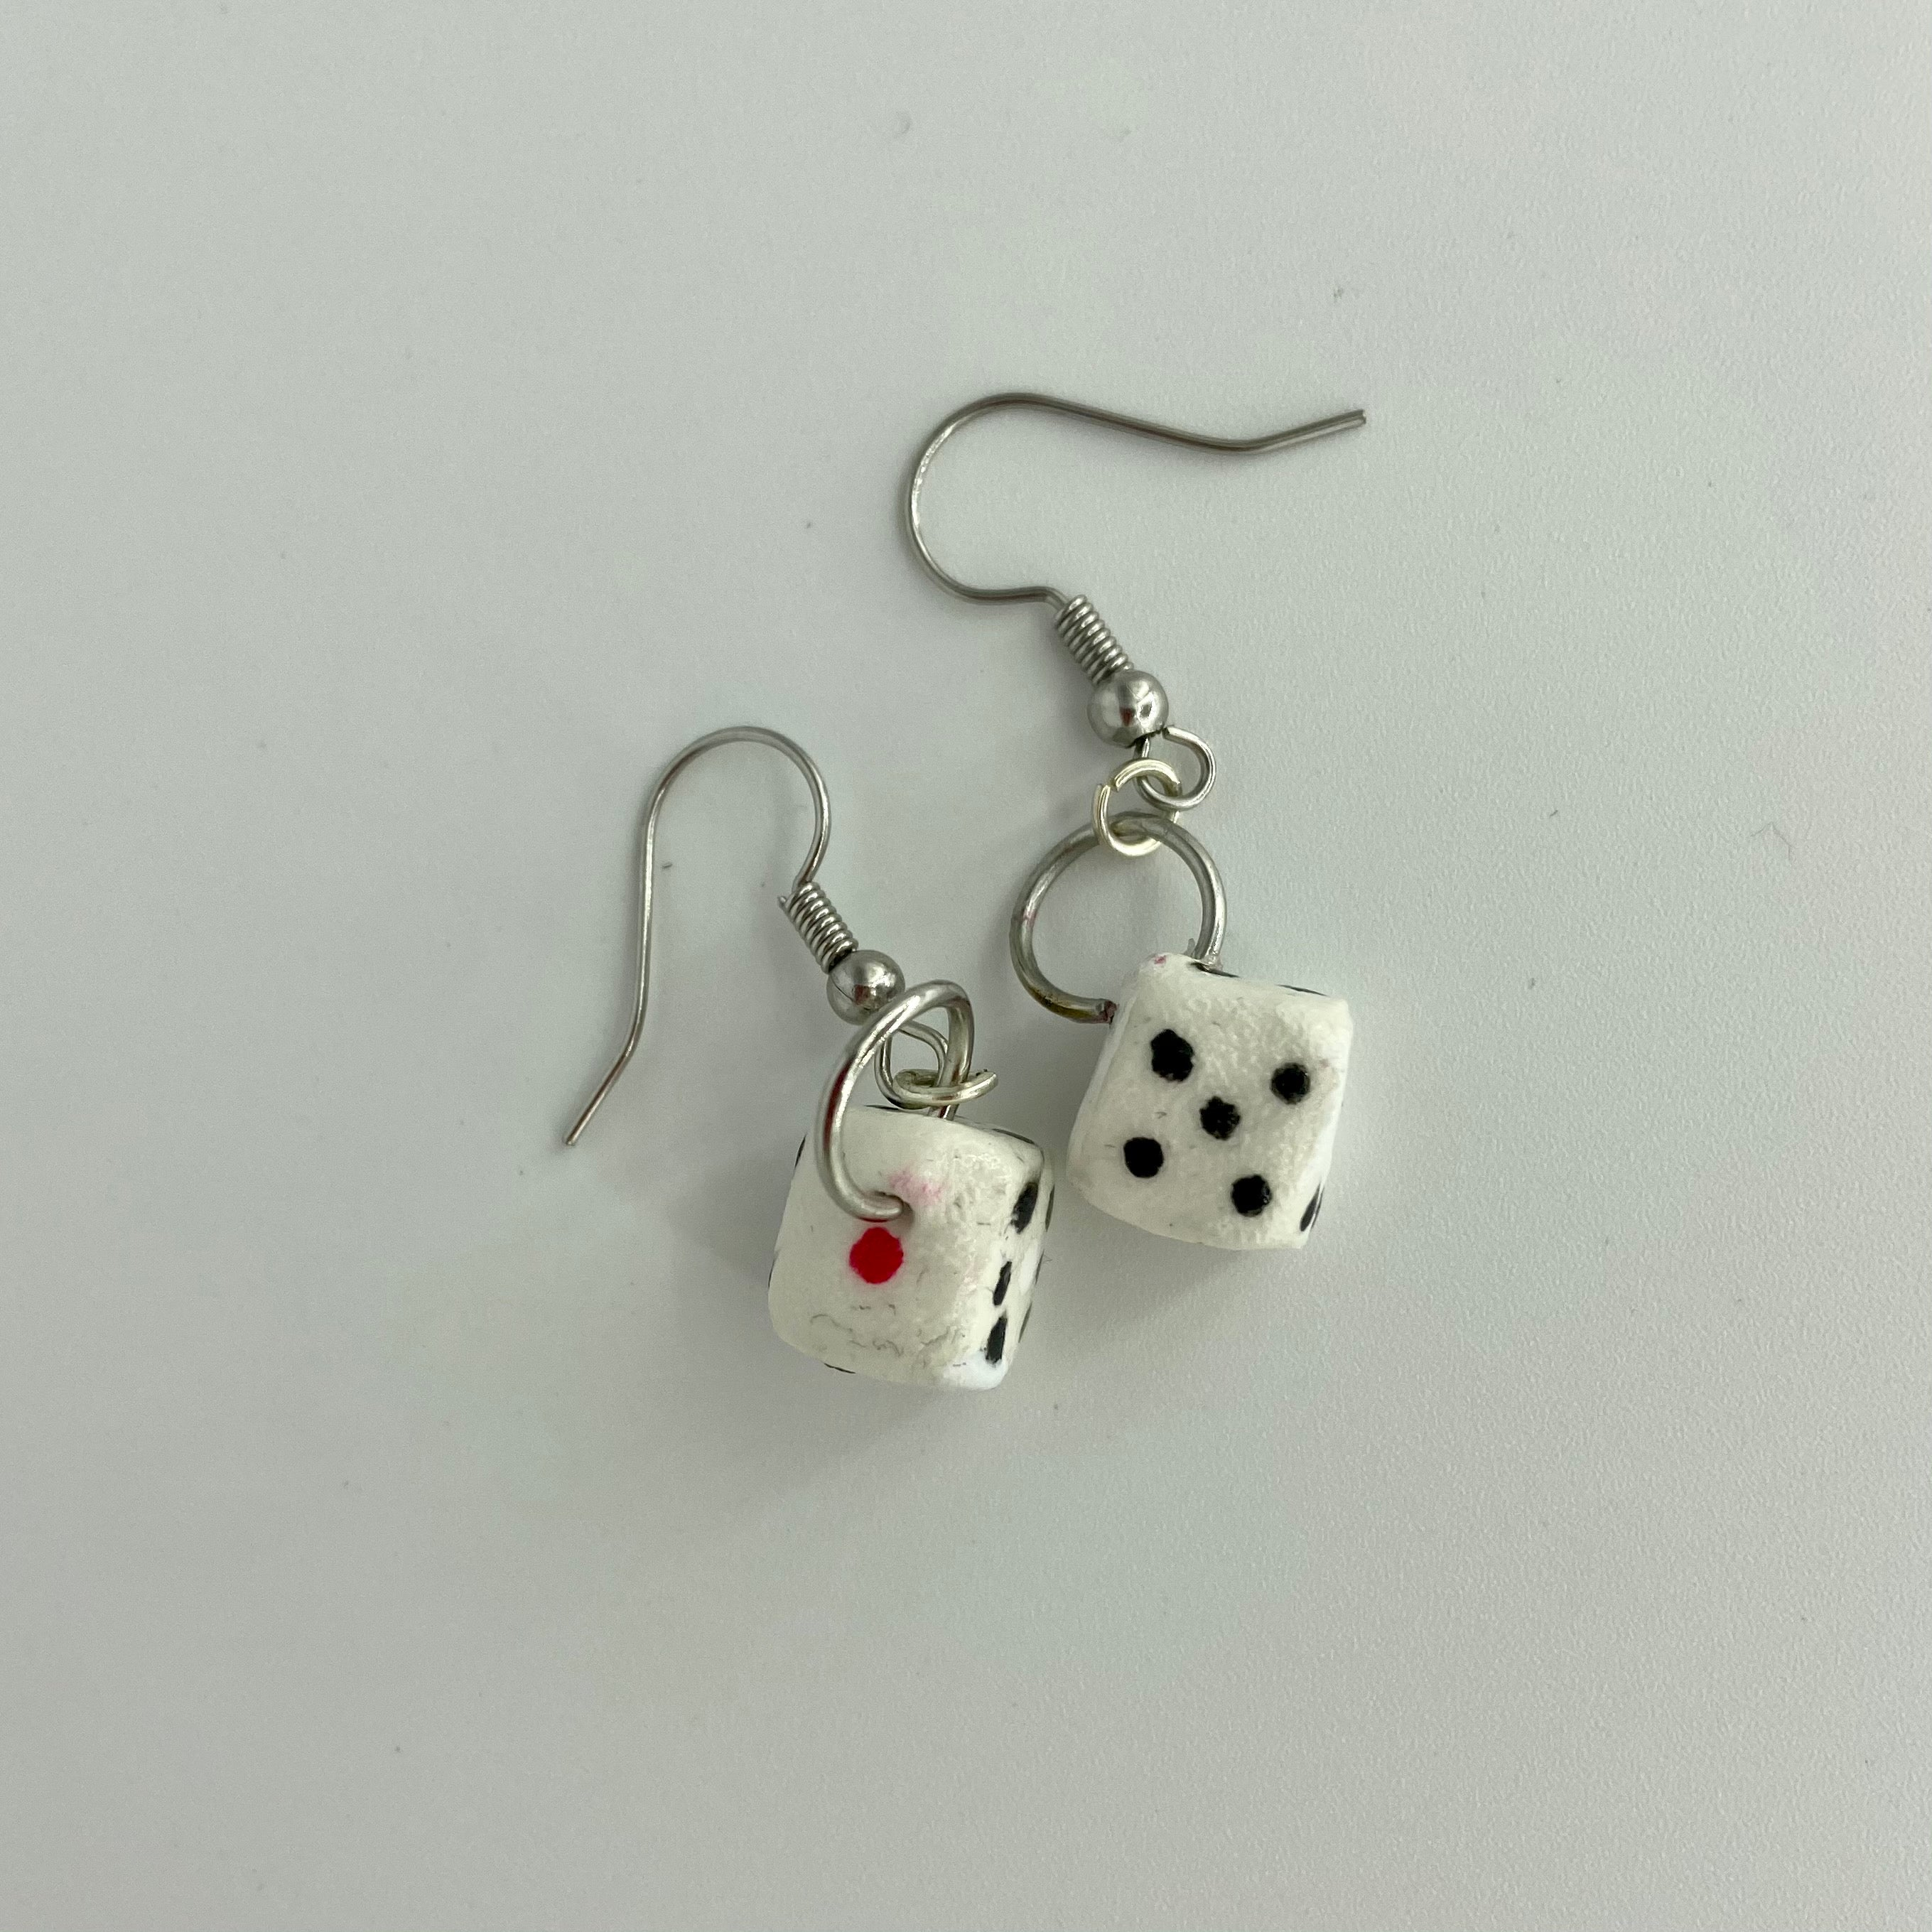 small dice earrings